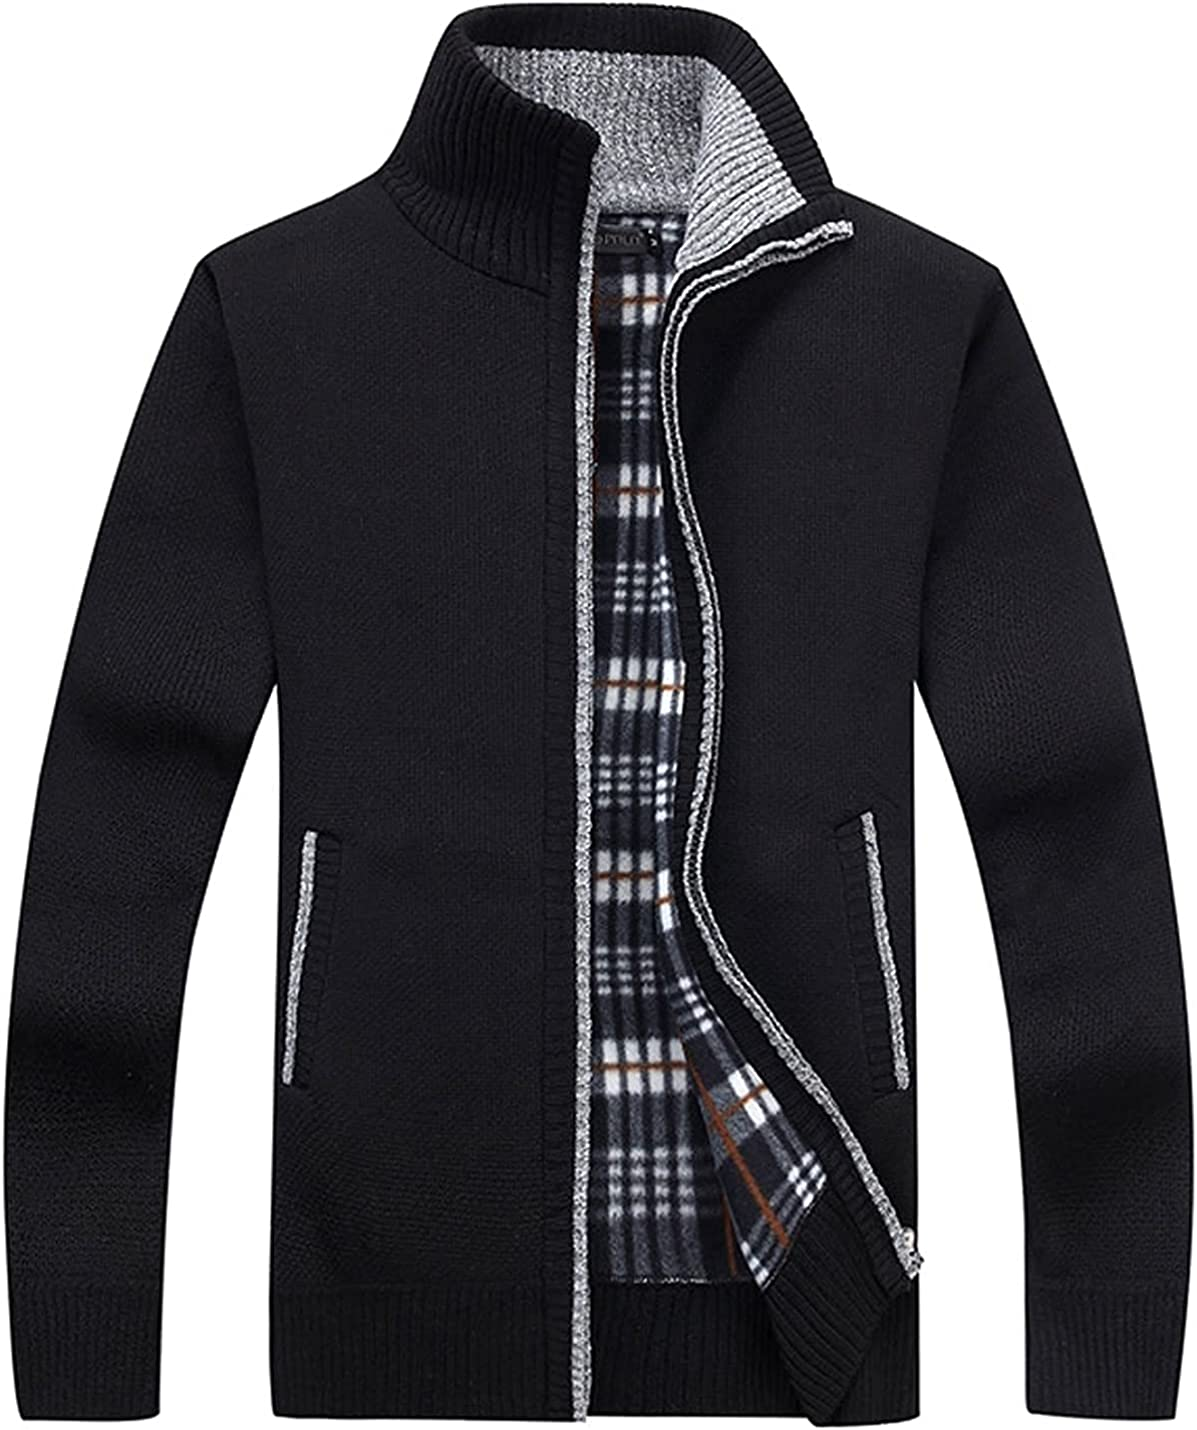 CJCGLOBAL Men's Casual Slim Full Zip Thick Knitted Cardigan Sweaters with Pockets (Black,Medium)